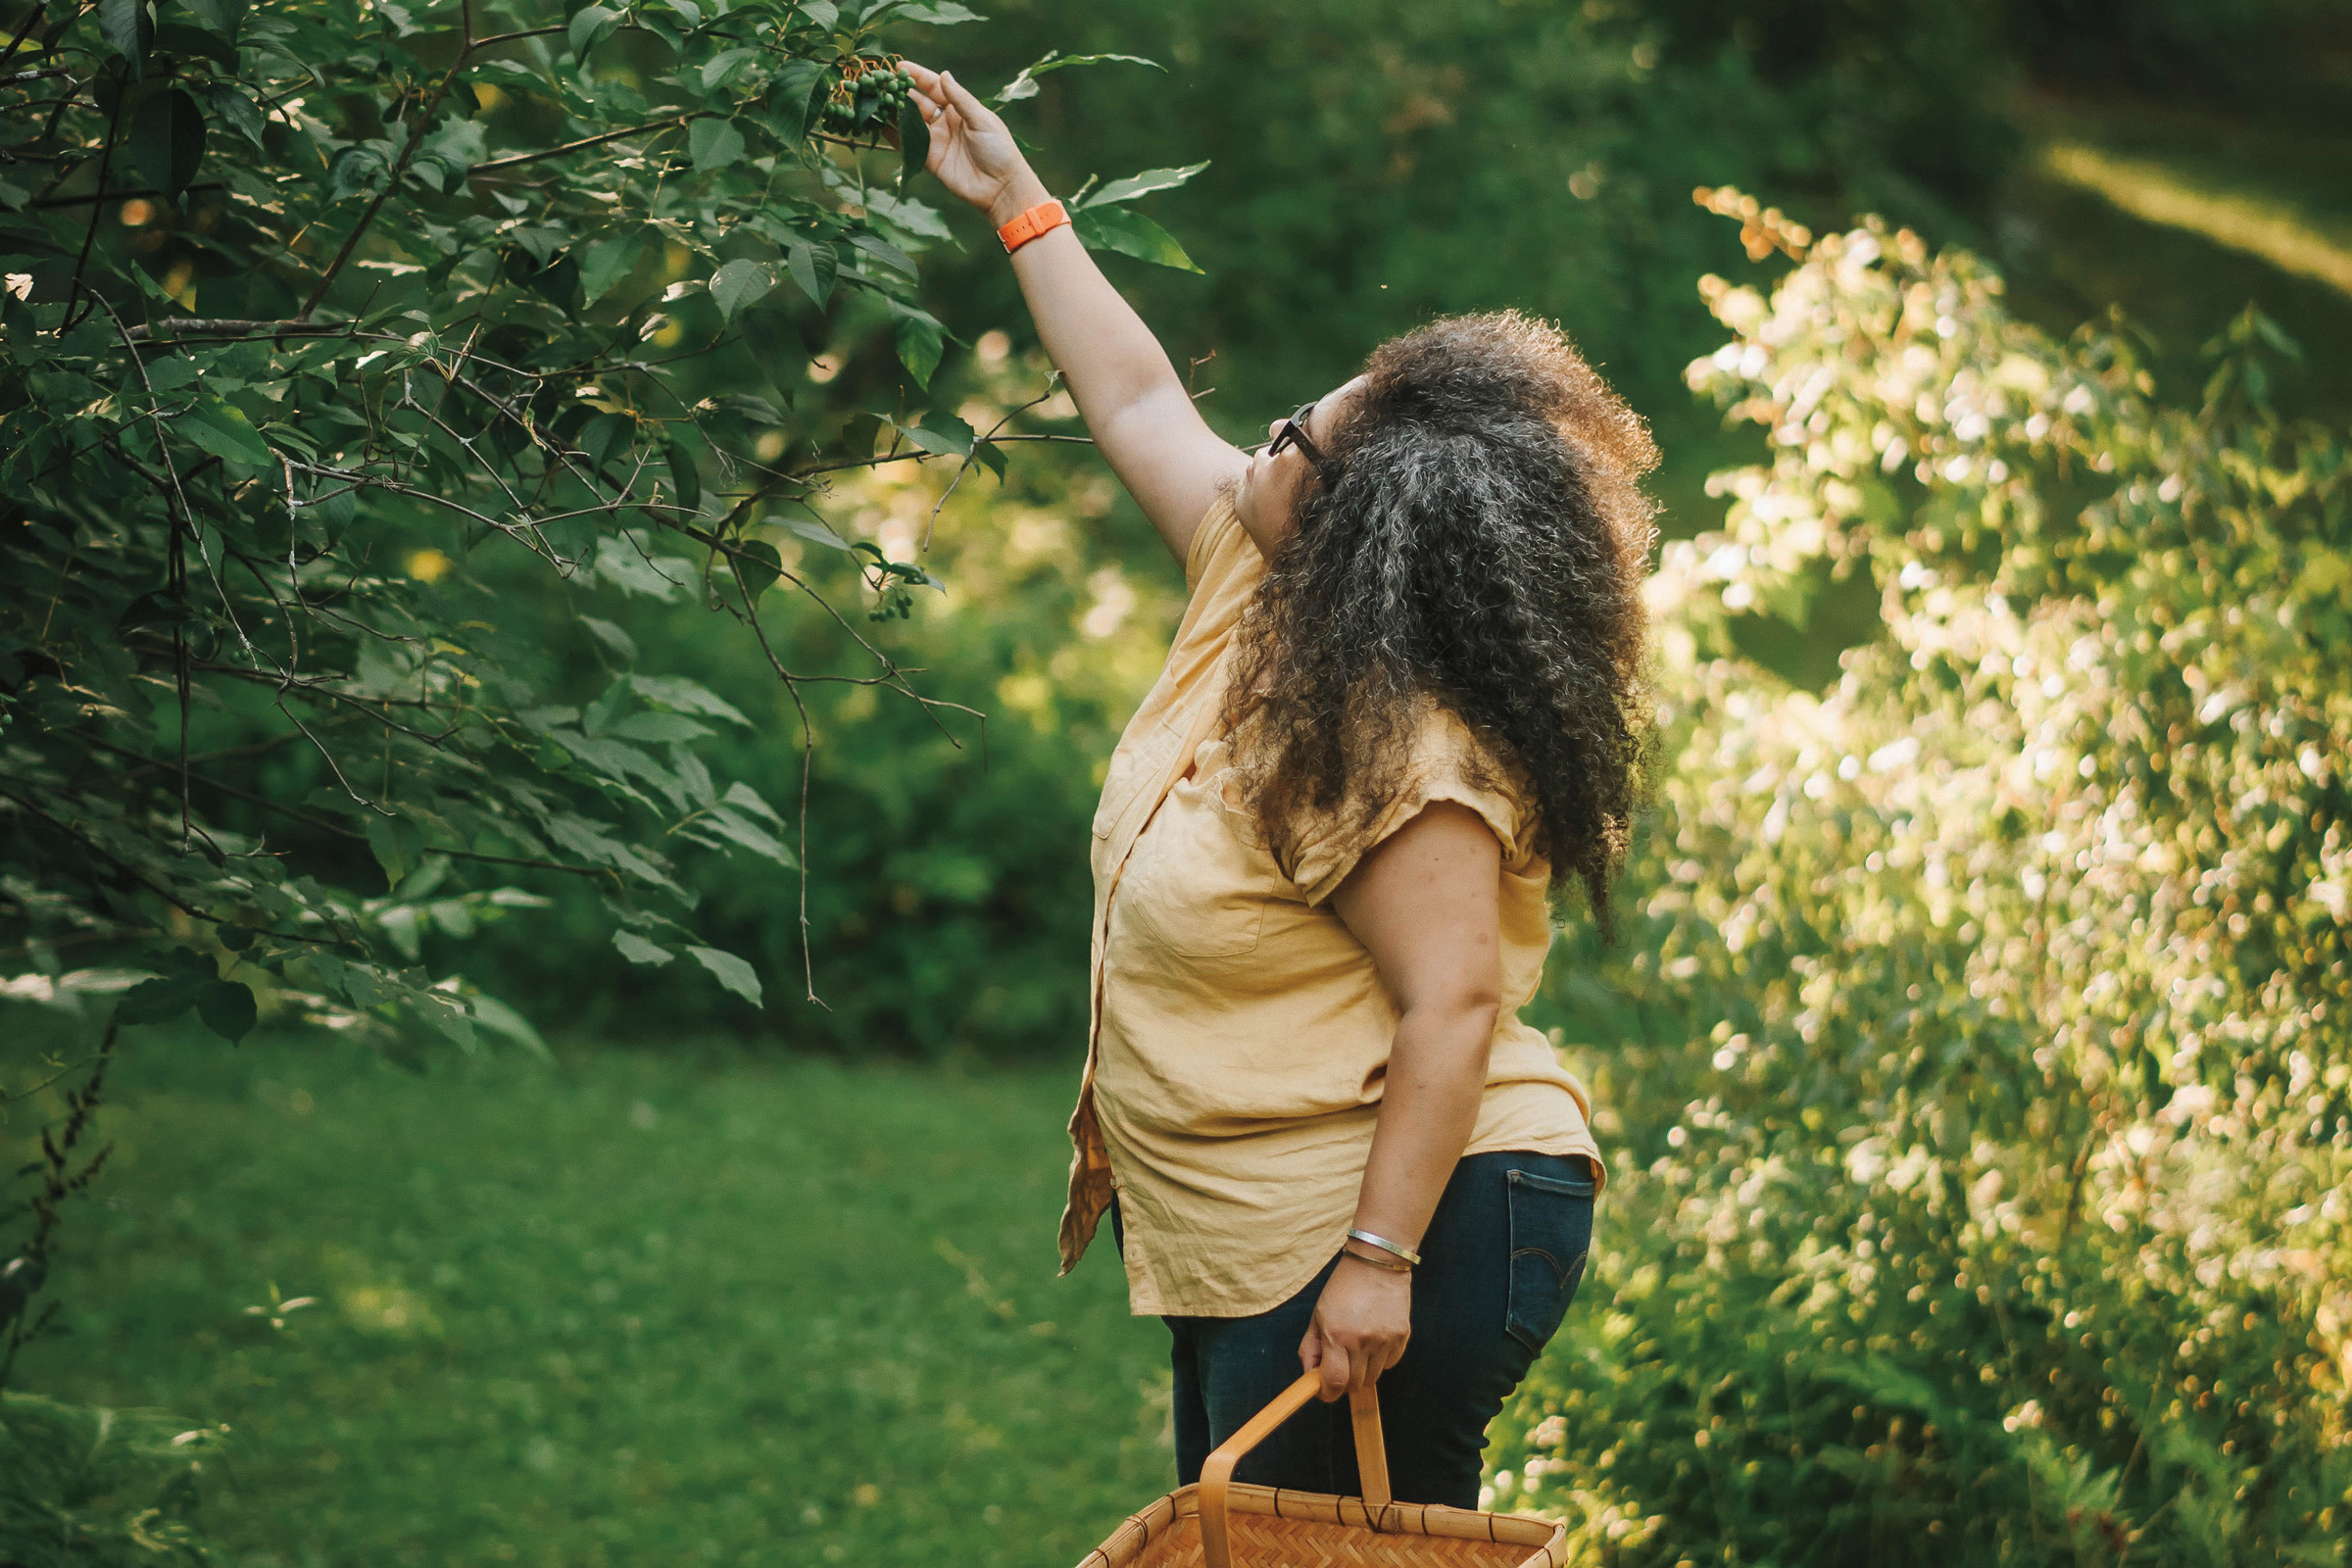 A photo of forager Stephanie Gravalese, an Afro Latina woman with think curly hair wearing a tan button up shirt, jeans and black boots. She's standing in a lush park with a wooden basket and reaching up to inspect berries on a tree.